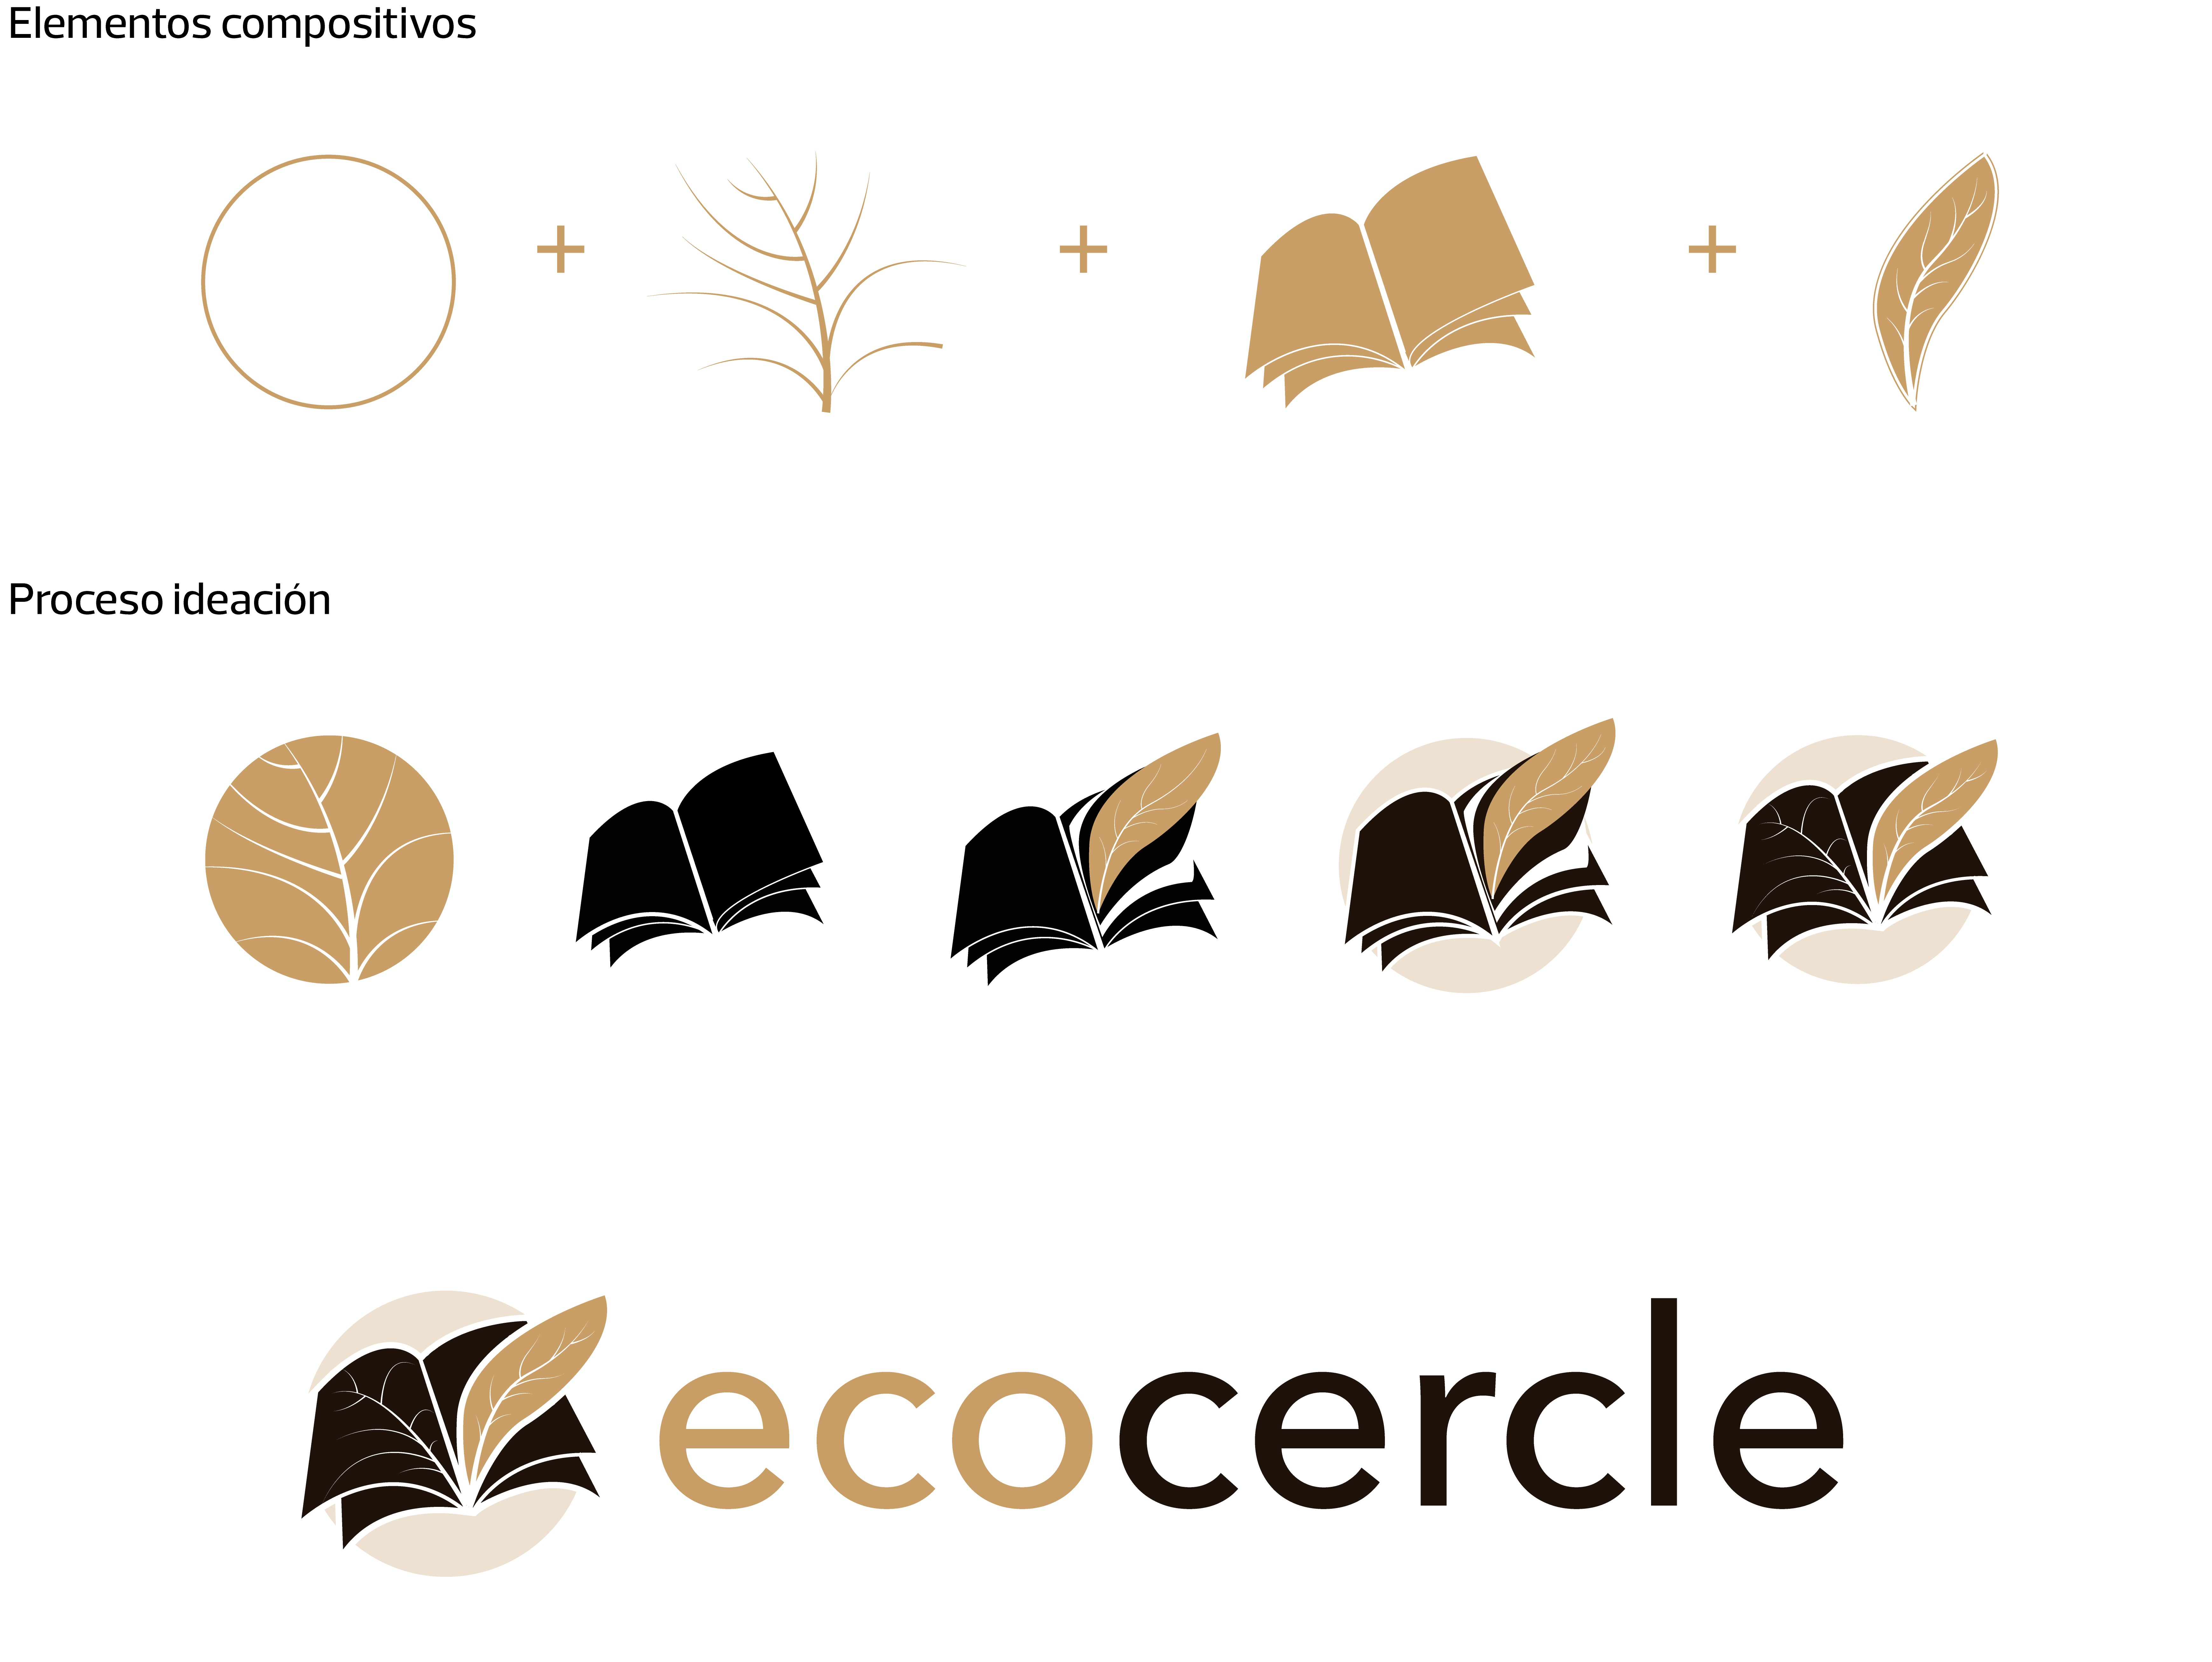 archicercle ecocercle